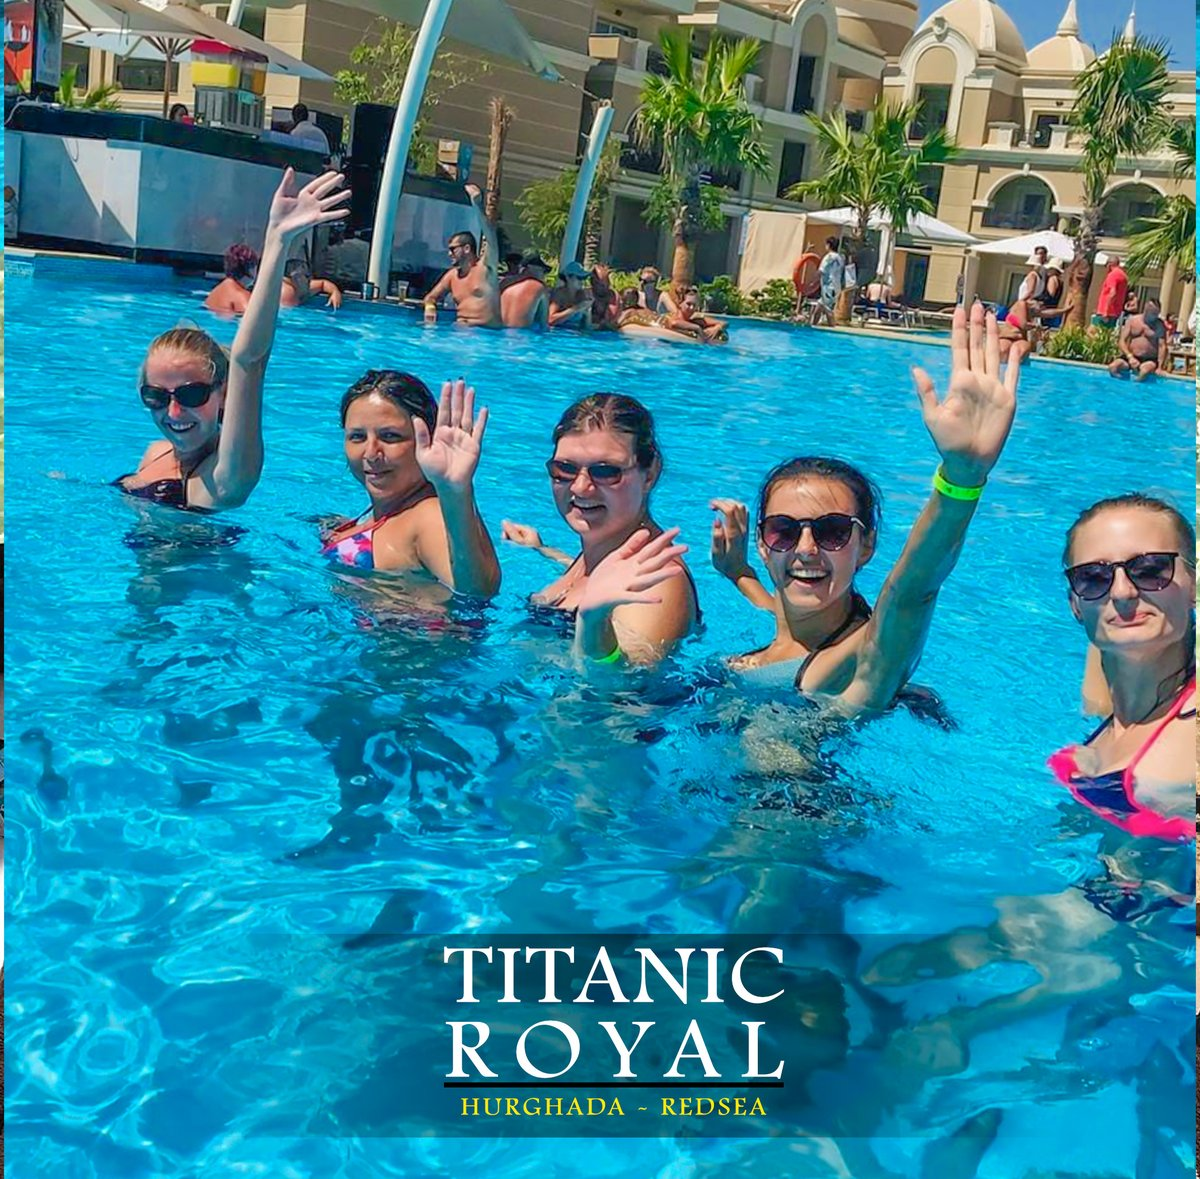 https://t.co/WBCW9YPJ4Z  #beautifuldestinations #egyptianholidays #instapic #relax #beach #travelling #egypt #hurghada #resorts #redsea #familyvacation #travelblogger #landscape #morning #chilling #serenity #realx #beauty #smile #titanicroyal https://t.co/kYiWEoao41